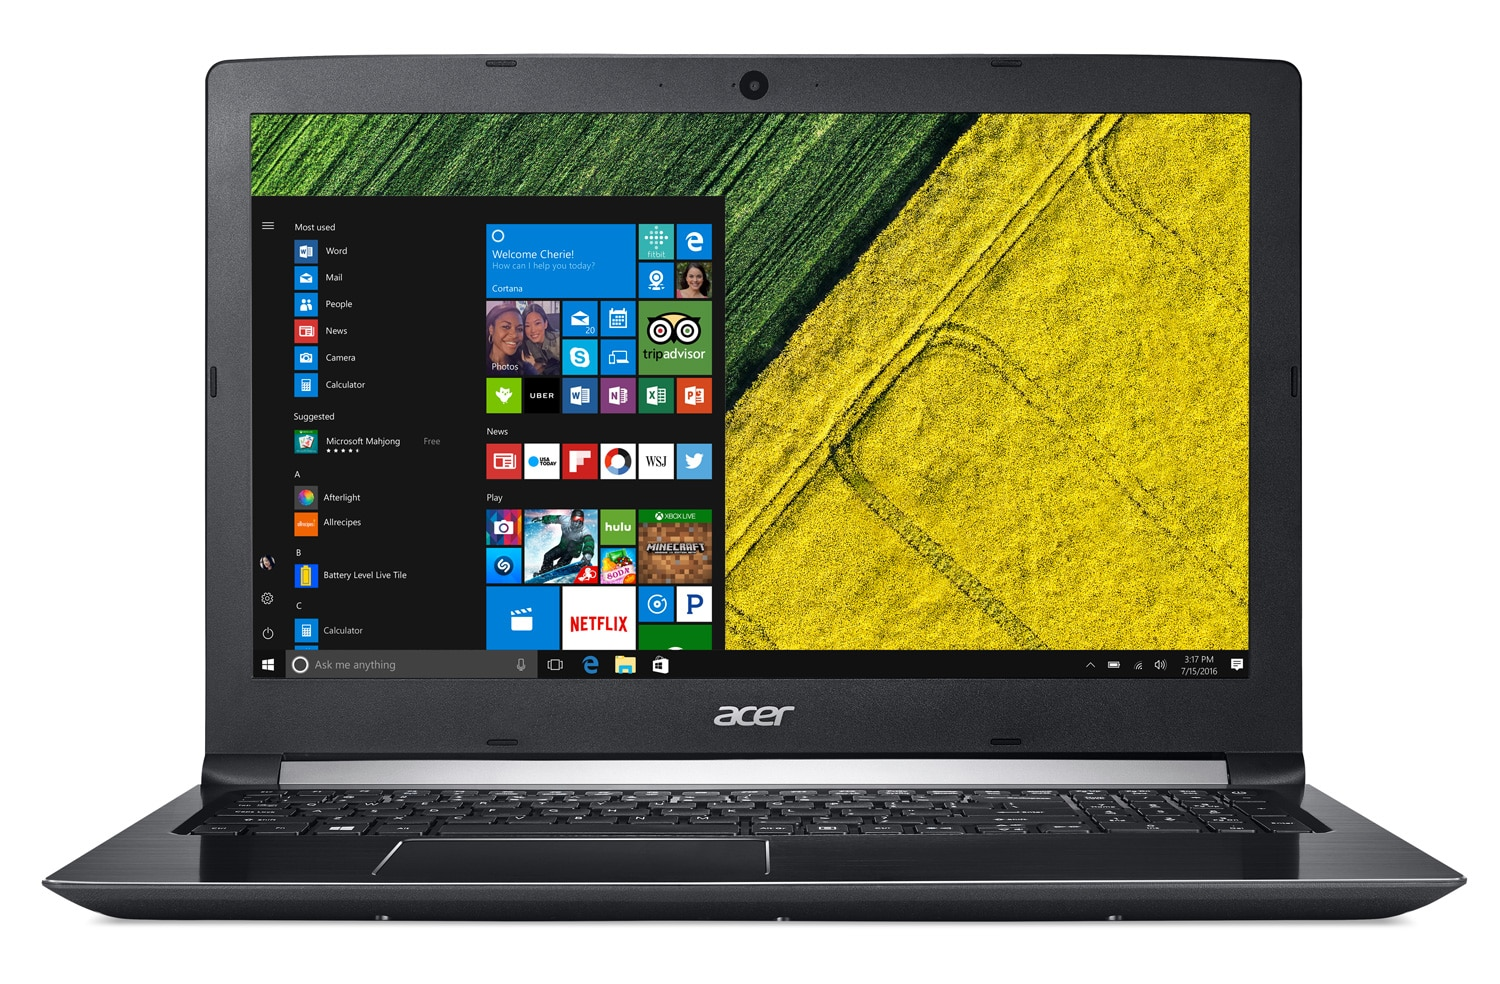 """Acer Aspire 5 A515-51-3545 à 459€, PC portable 15"""" SSD+1 To i3 Kaby Lake"""